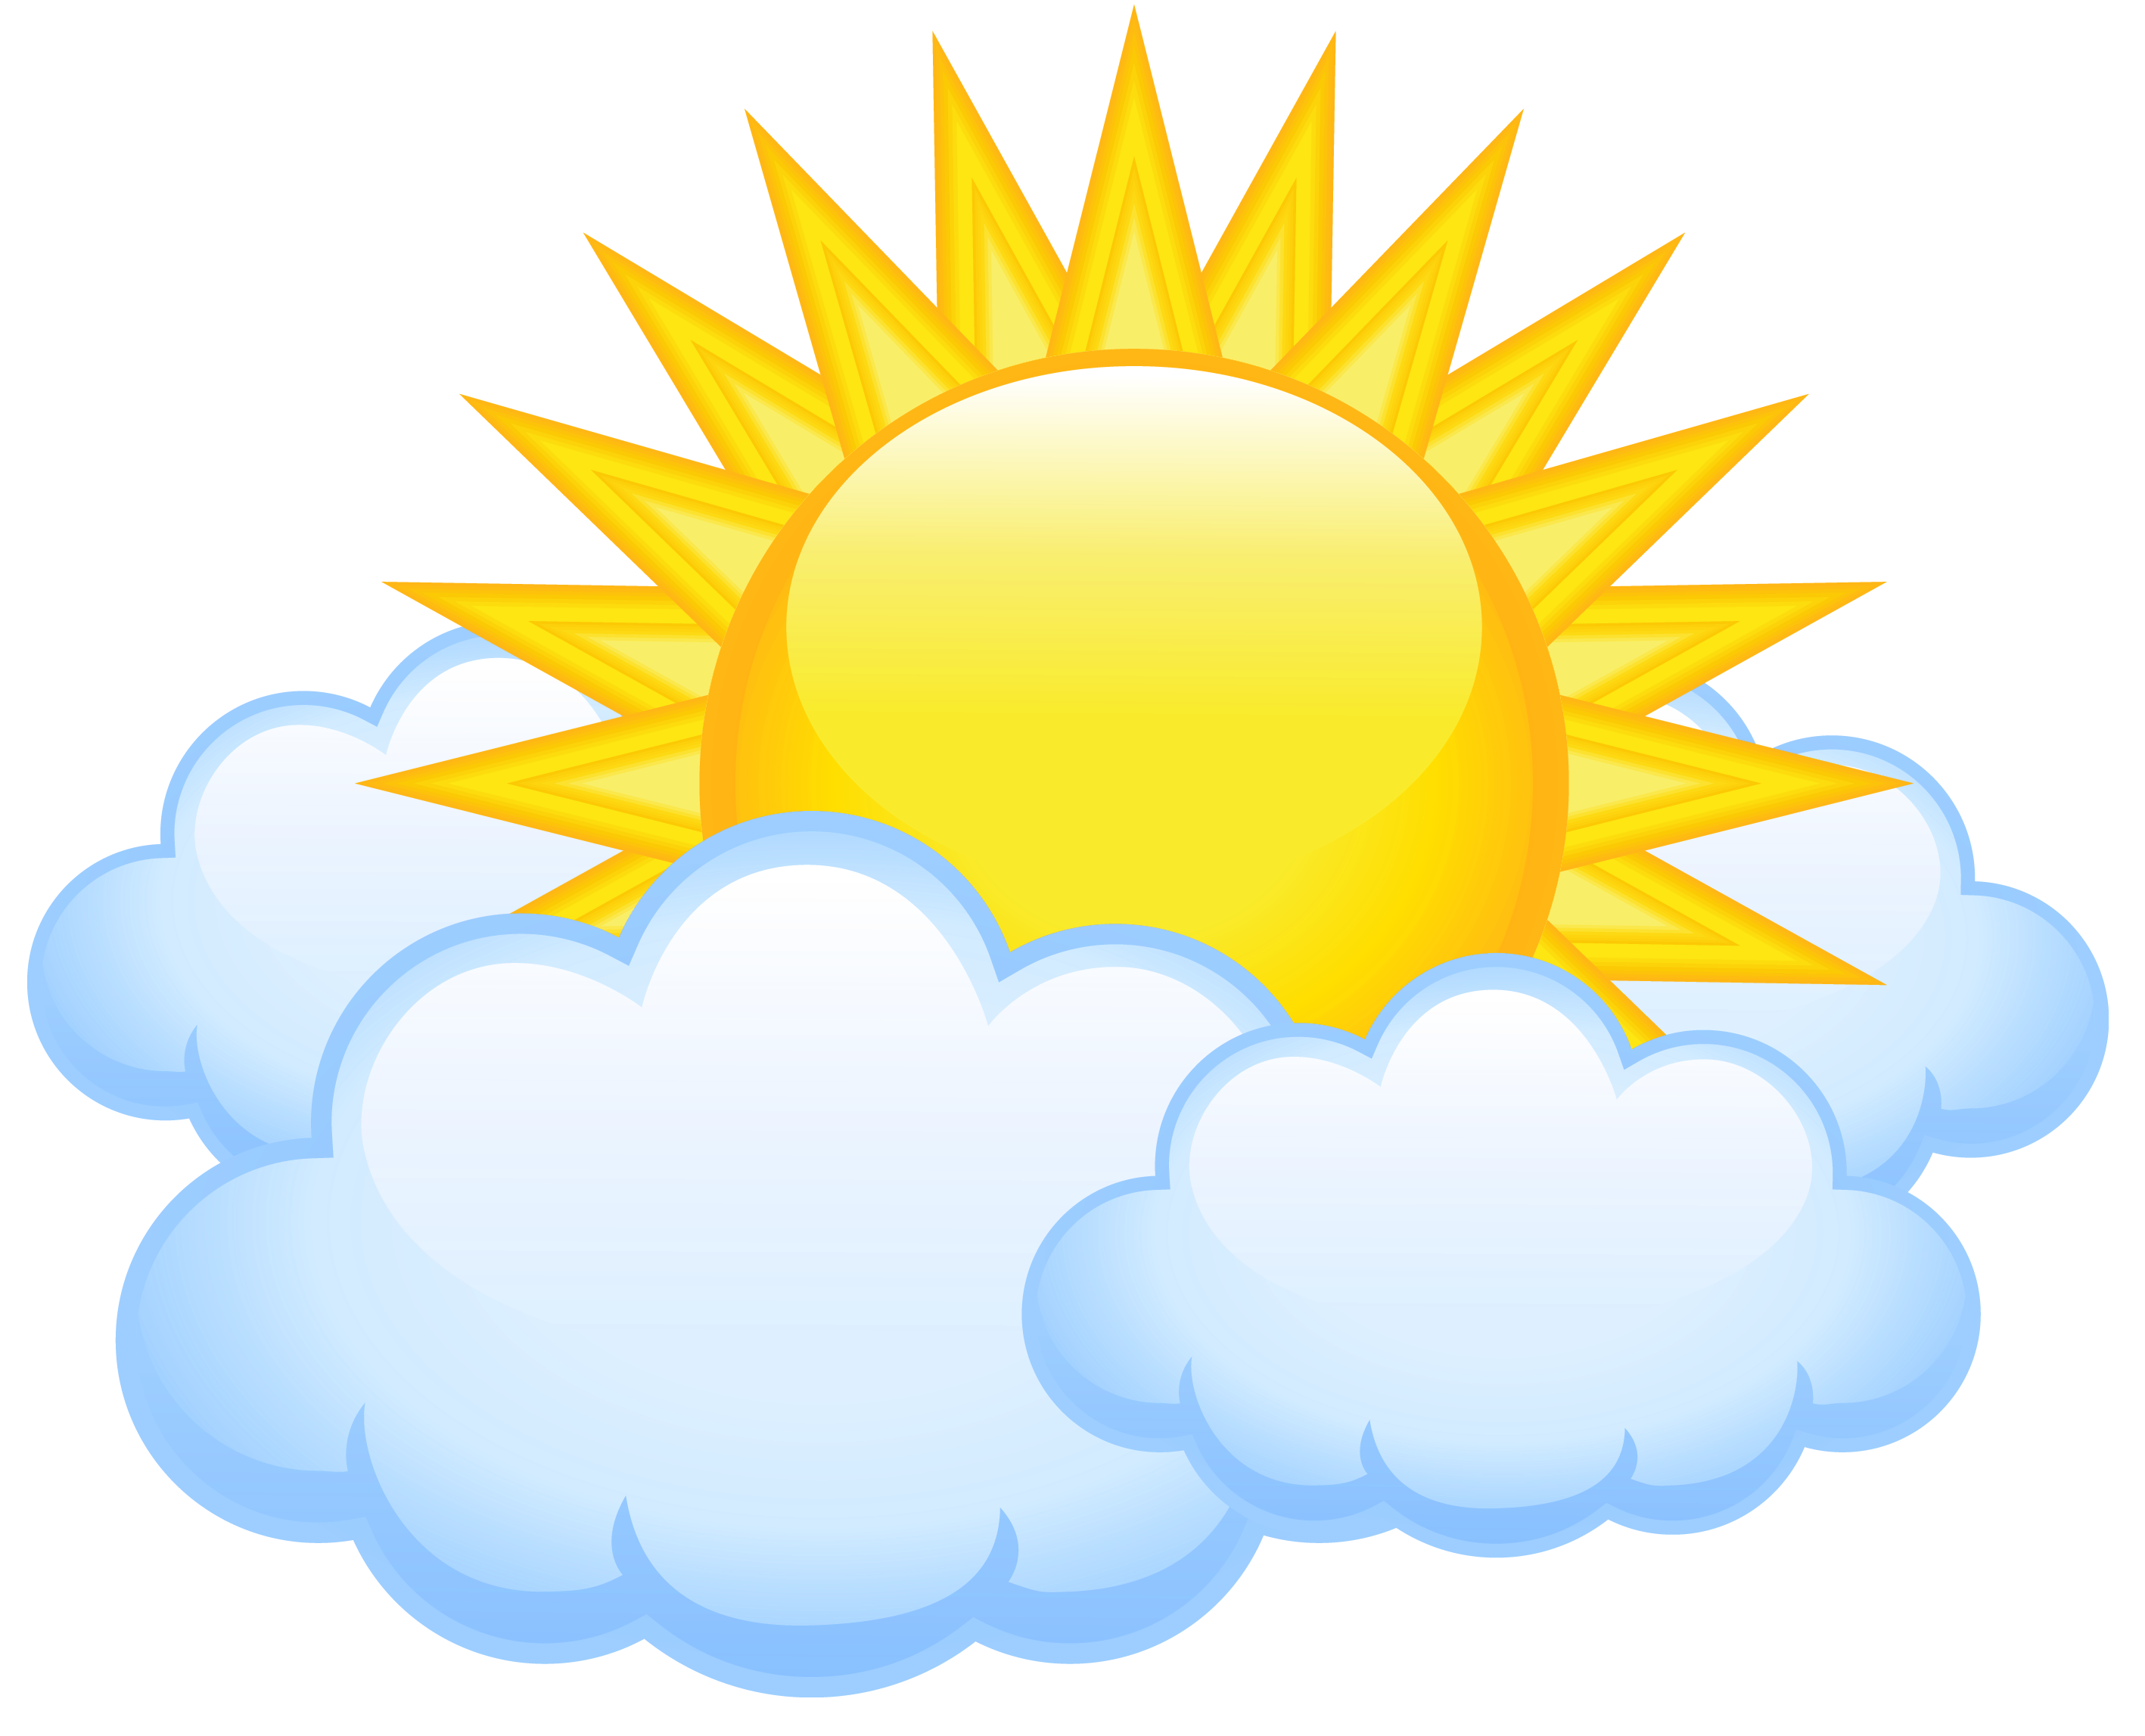 Sun and clouds clipart png. With transparent picture gallery